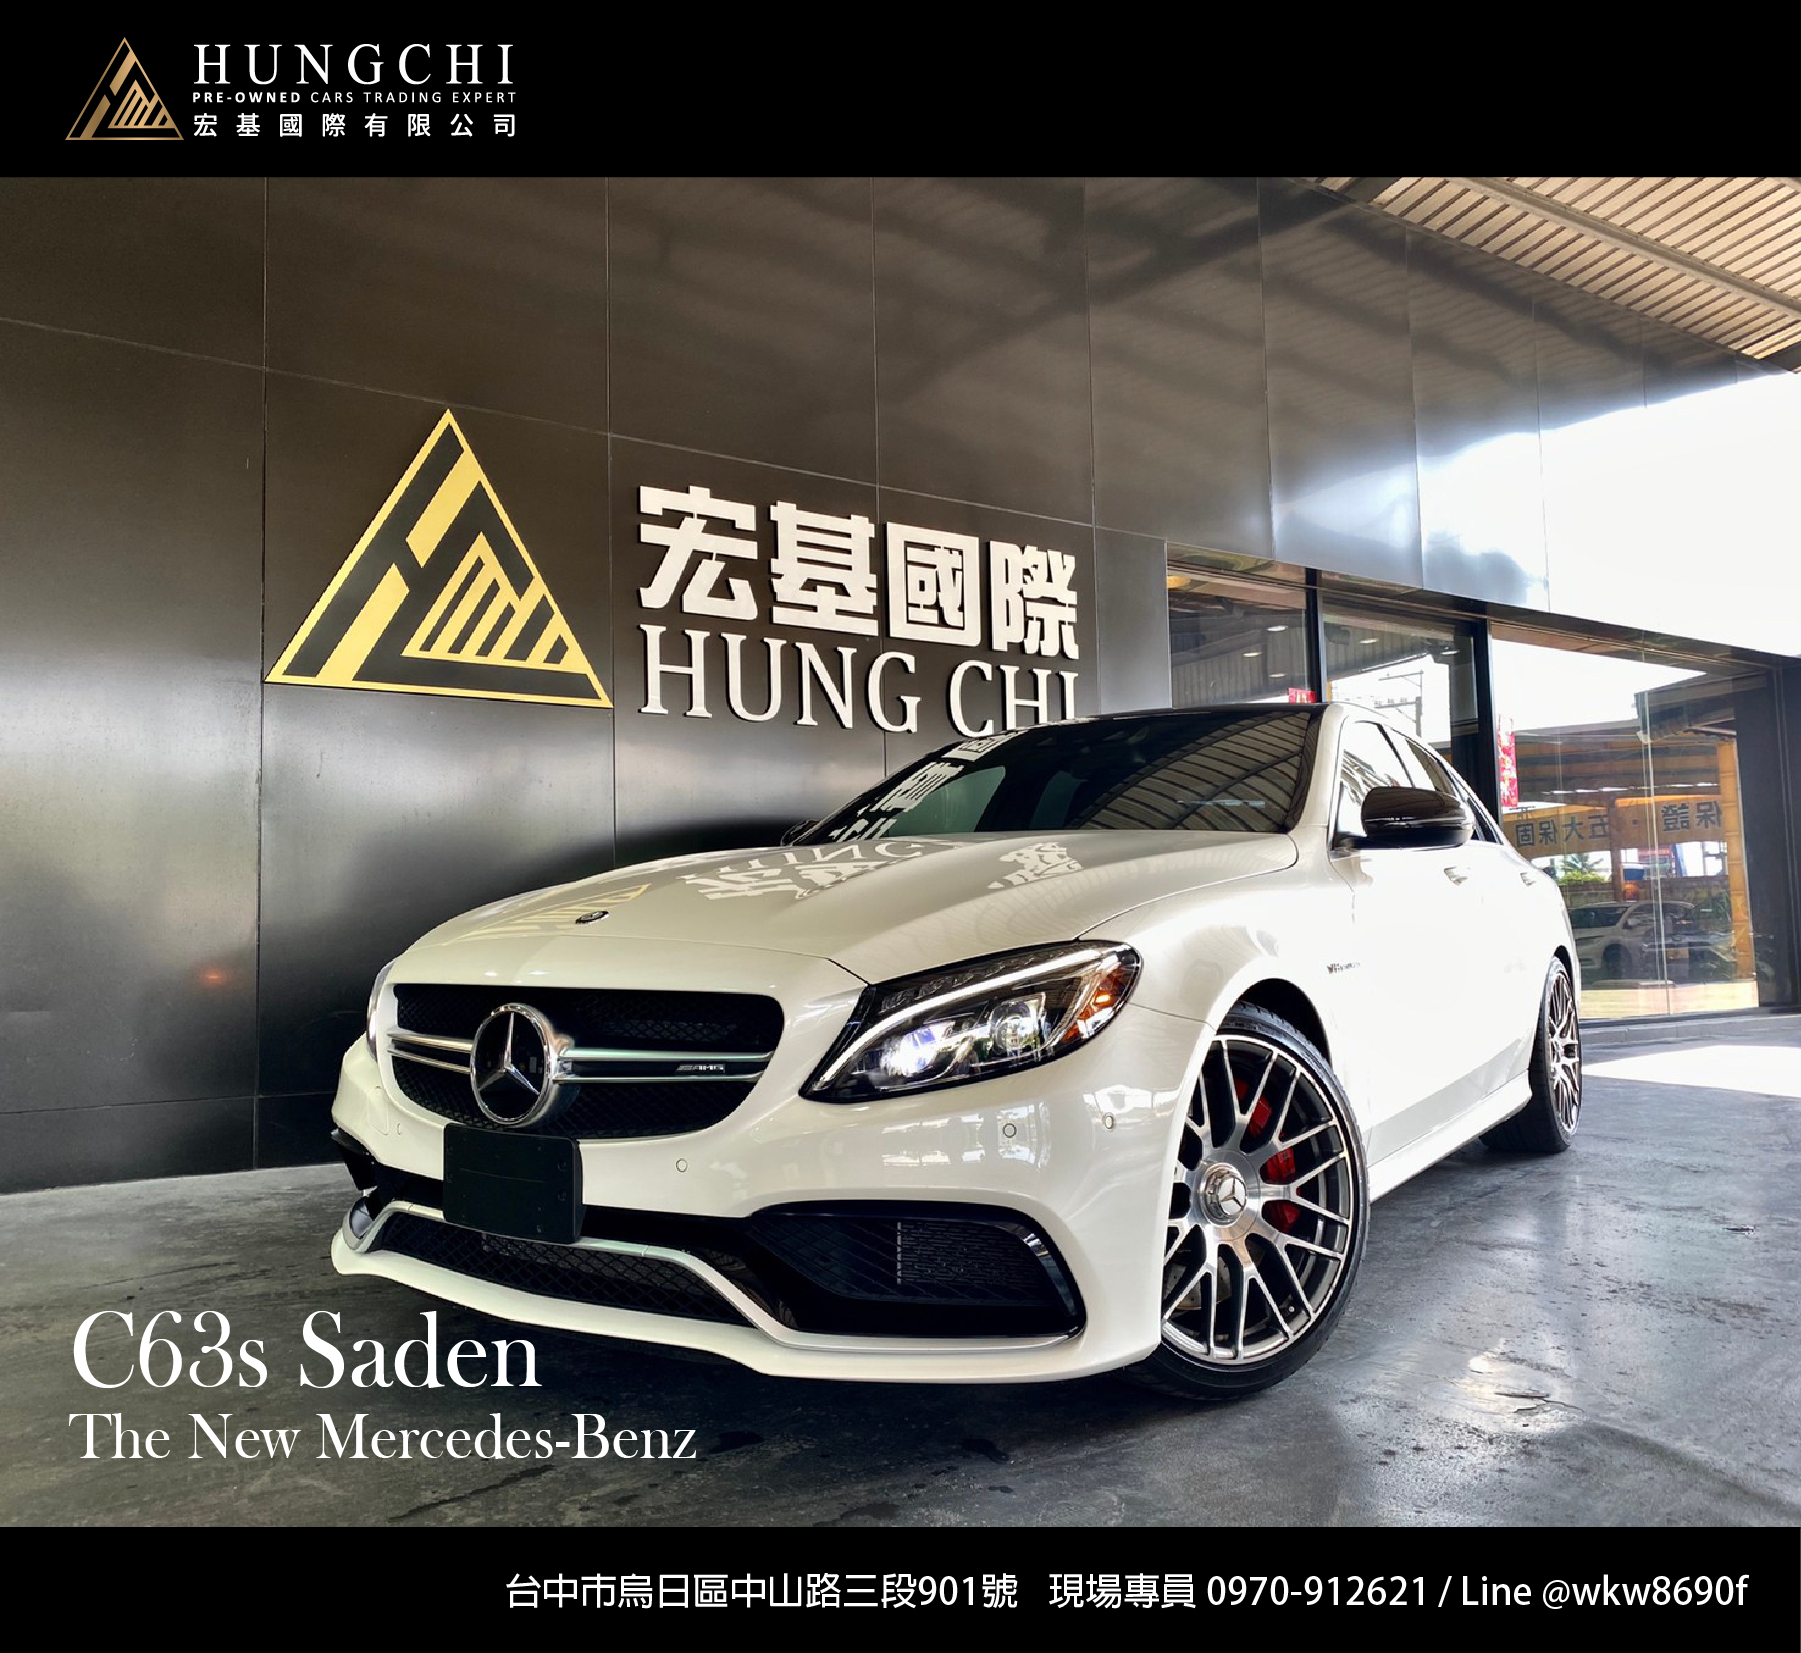 2016 Mercedes-Benz C-Class Sedan AMG C63 S